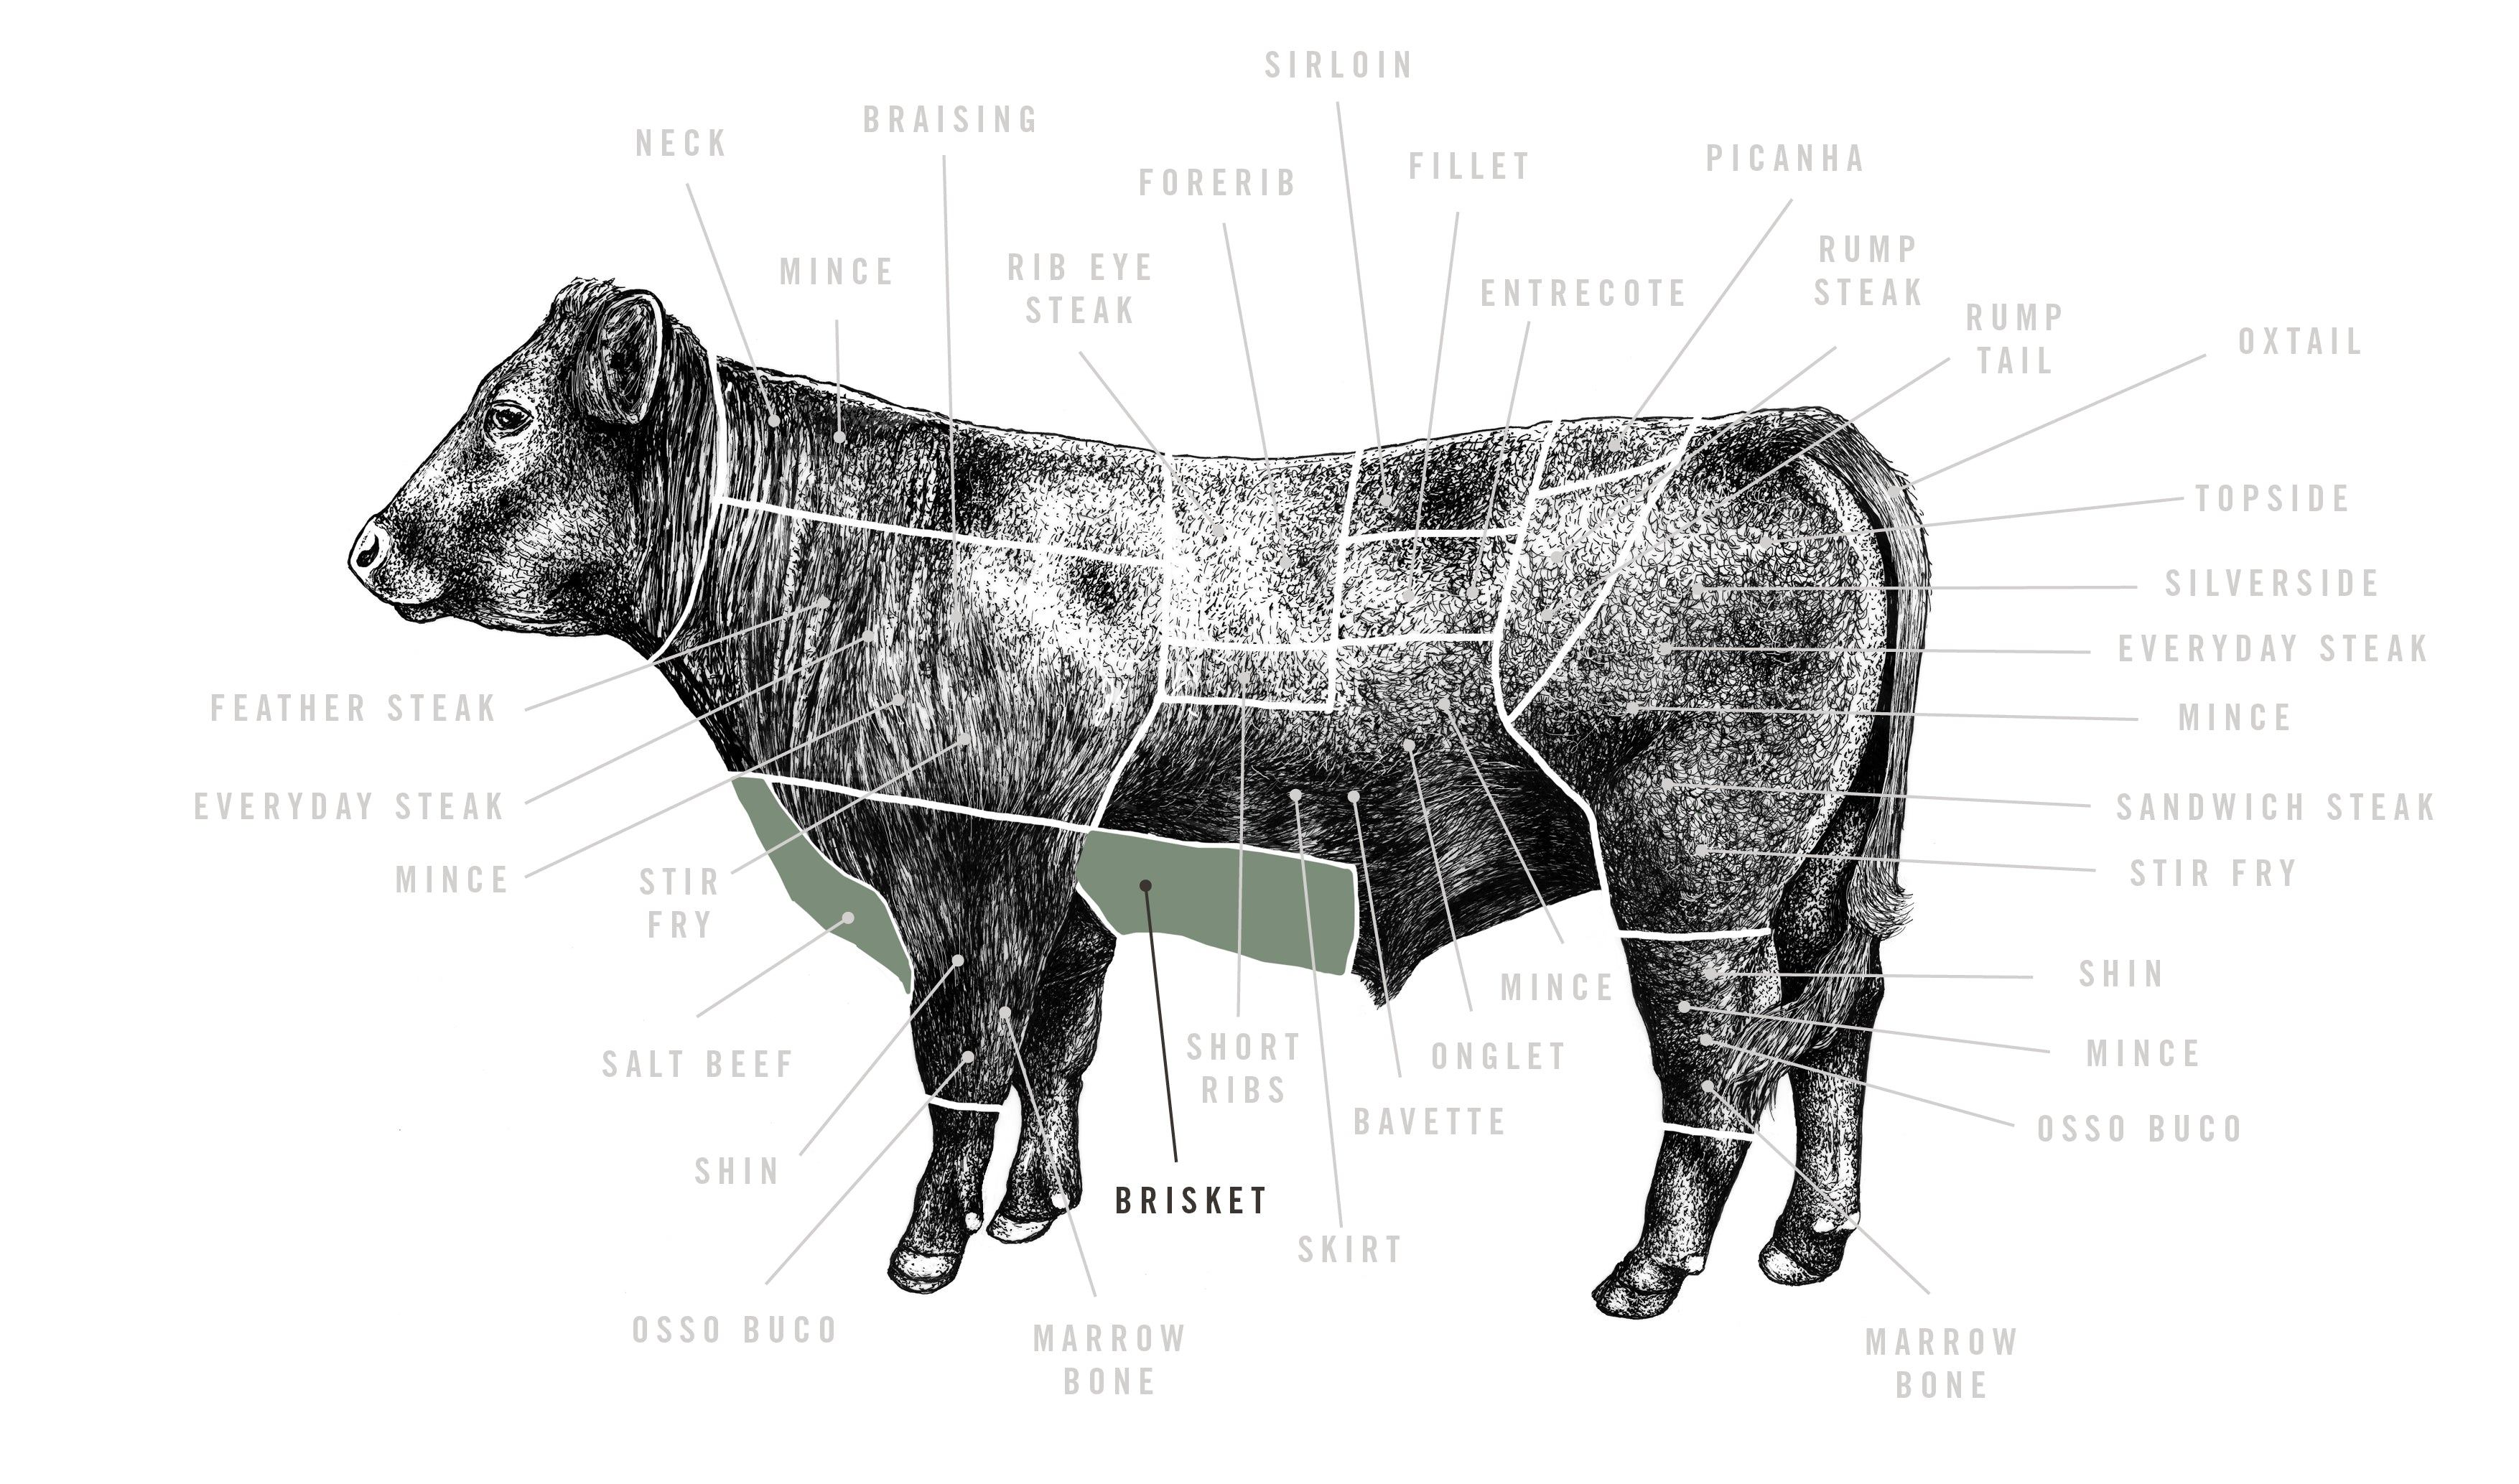 Grass Fed Beef Brisket meat cuts diagram